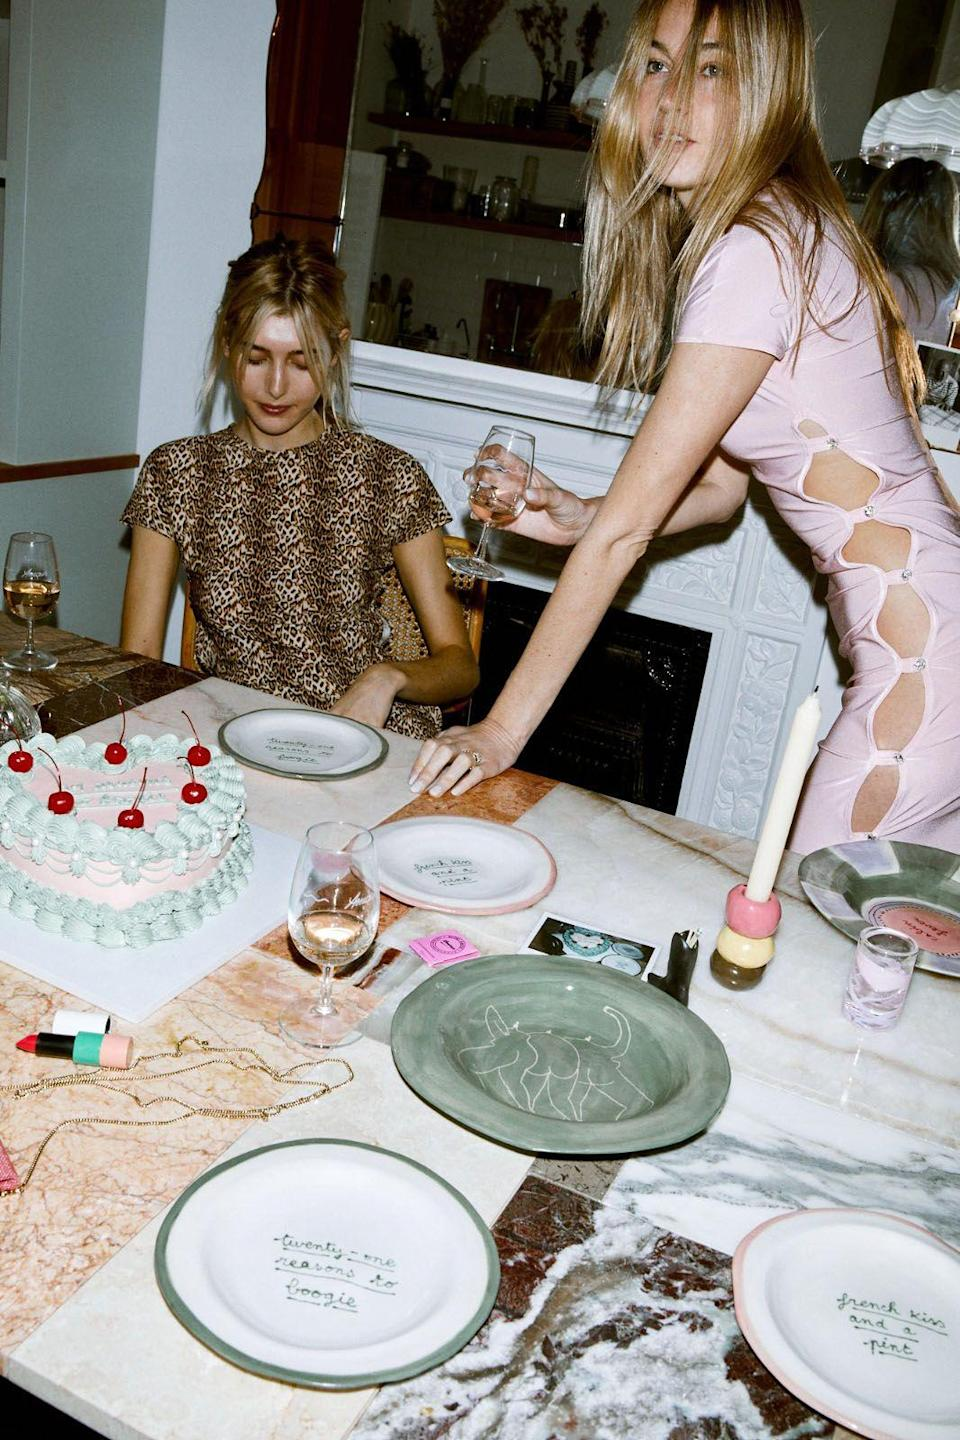 """<p>Lockdown is mercifully over and the option to socialise inside with friends and family now a reality once again. To help you achieve a flawless and chic evening, Parisian writer and broadcaster Camille Charrière has imparted her ultimate tips on how to throw the perfect dinner party. In fact, she's so committed to raising the hosting bar, that she's designed <a href=""""https://www.theyellowworld.co.uk/shop"""" rel=""""nofollow noopener"""" target=""""_blank"""" data-ylk=""""slk:a limited edition plate collection with ceramic artist Laetitia Rouget"""" class=""""link rapid-noclick-resp"""">a limited edition plate collection with ceramic artist Laetitia Rouget</a> which celebrate the end of lockdown as we enter the new roaring twenties. </p><p>We know that perennial ingredients of good food, drink, friends, good conversation are key to a successful night in, but what else can you do to ensure that your guests have an excellent, fun-filled time? Allow Charrière to offer her insights.<br></p>"""